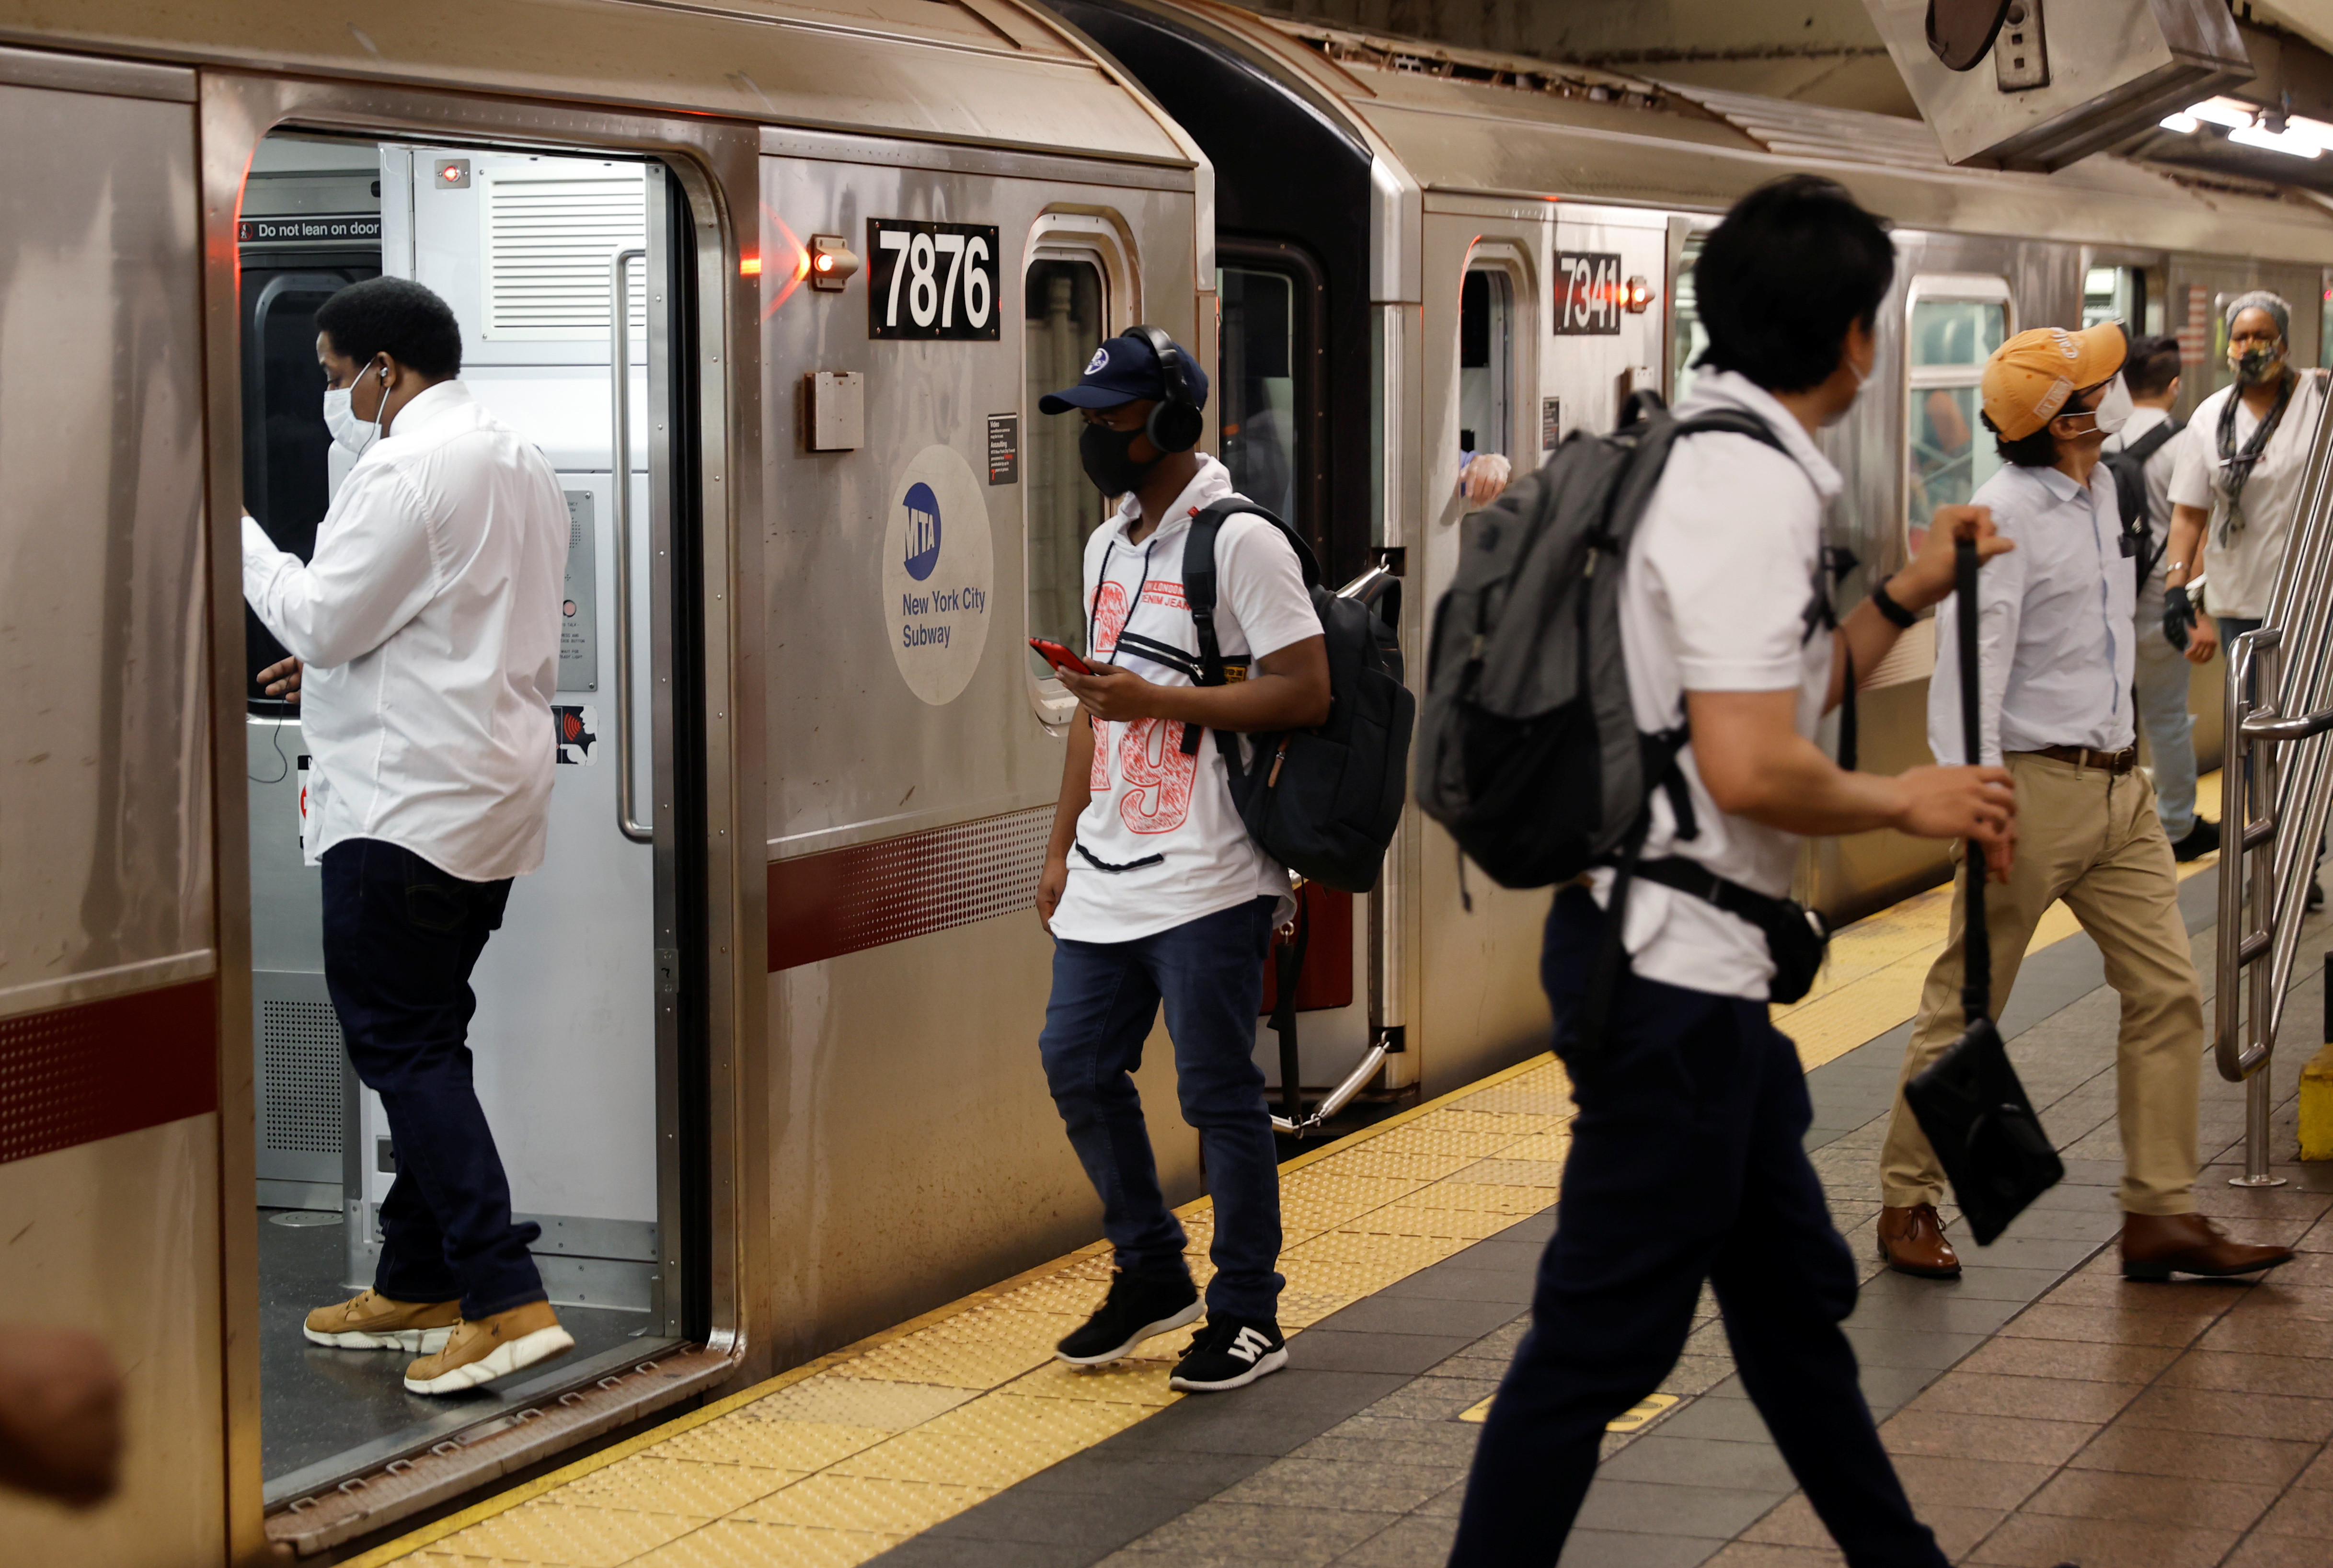 Commuters ride the subway on the first day of New York City's phase one reopening during the outbreak of the coronavirus disease (COVID-19) in New York City, New York, U.S., June 8, 2020. REUTERS/Mike Segar - RC245H9A1VJC